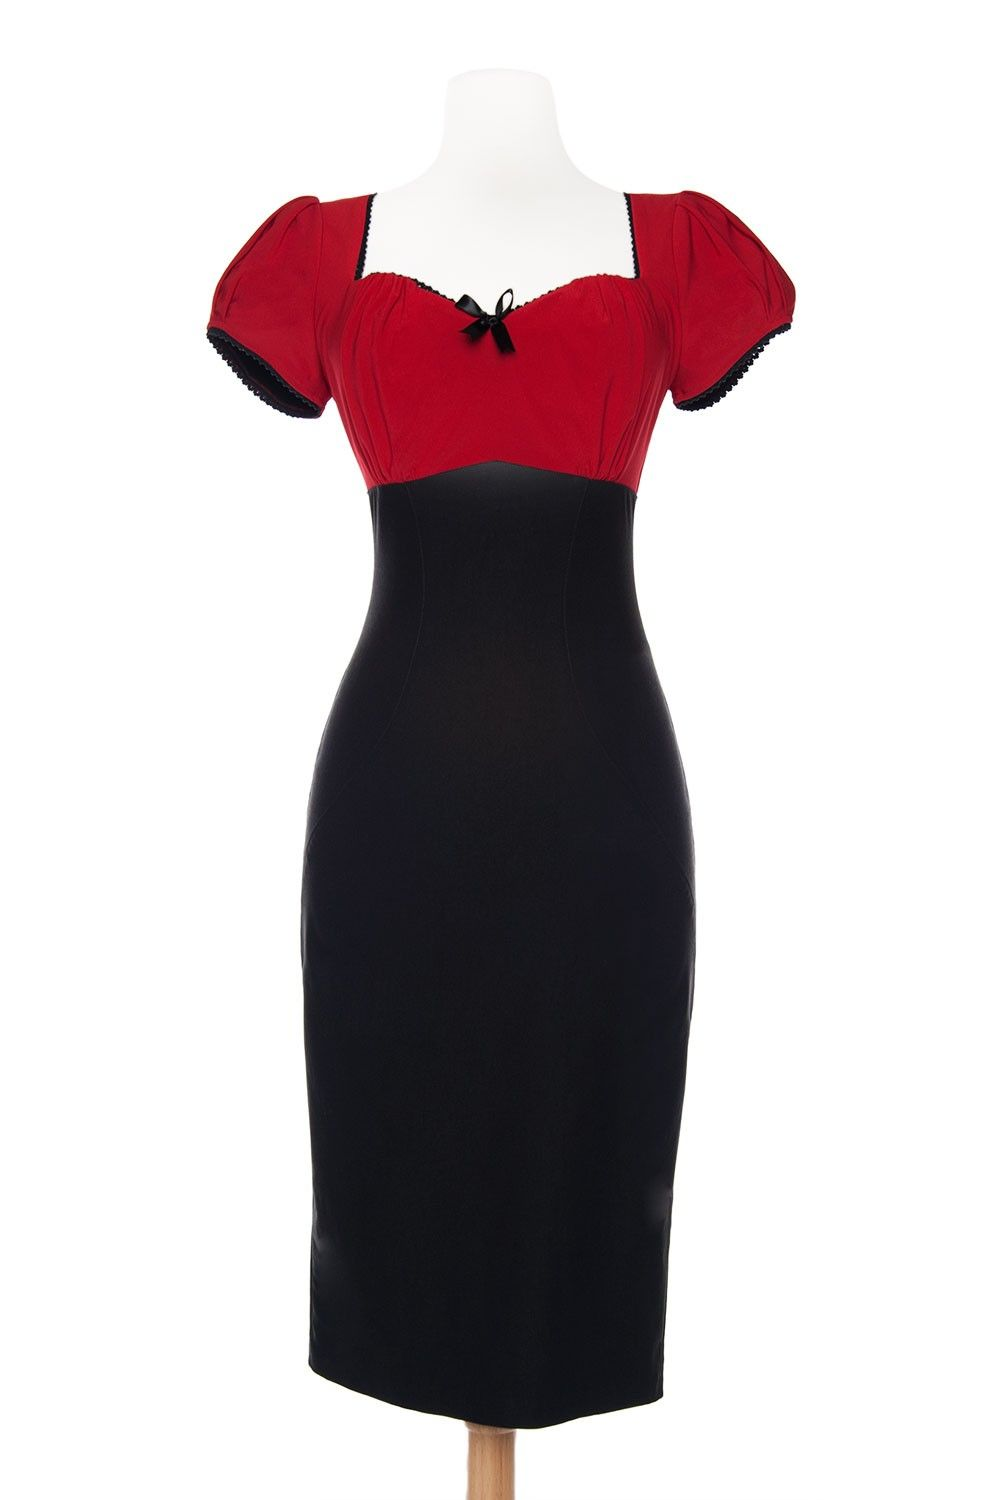 Final sale pinup couture mary ann dress in red pinup girl